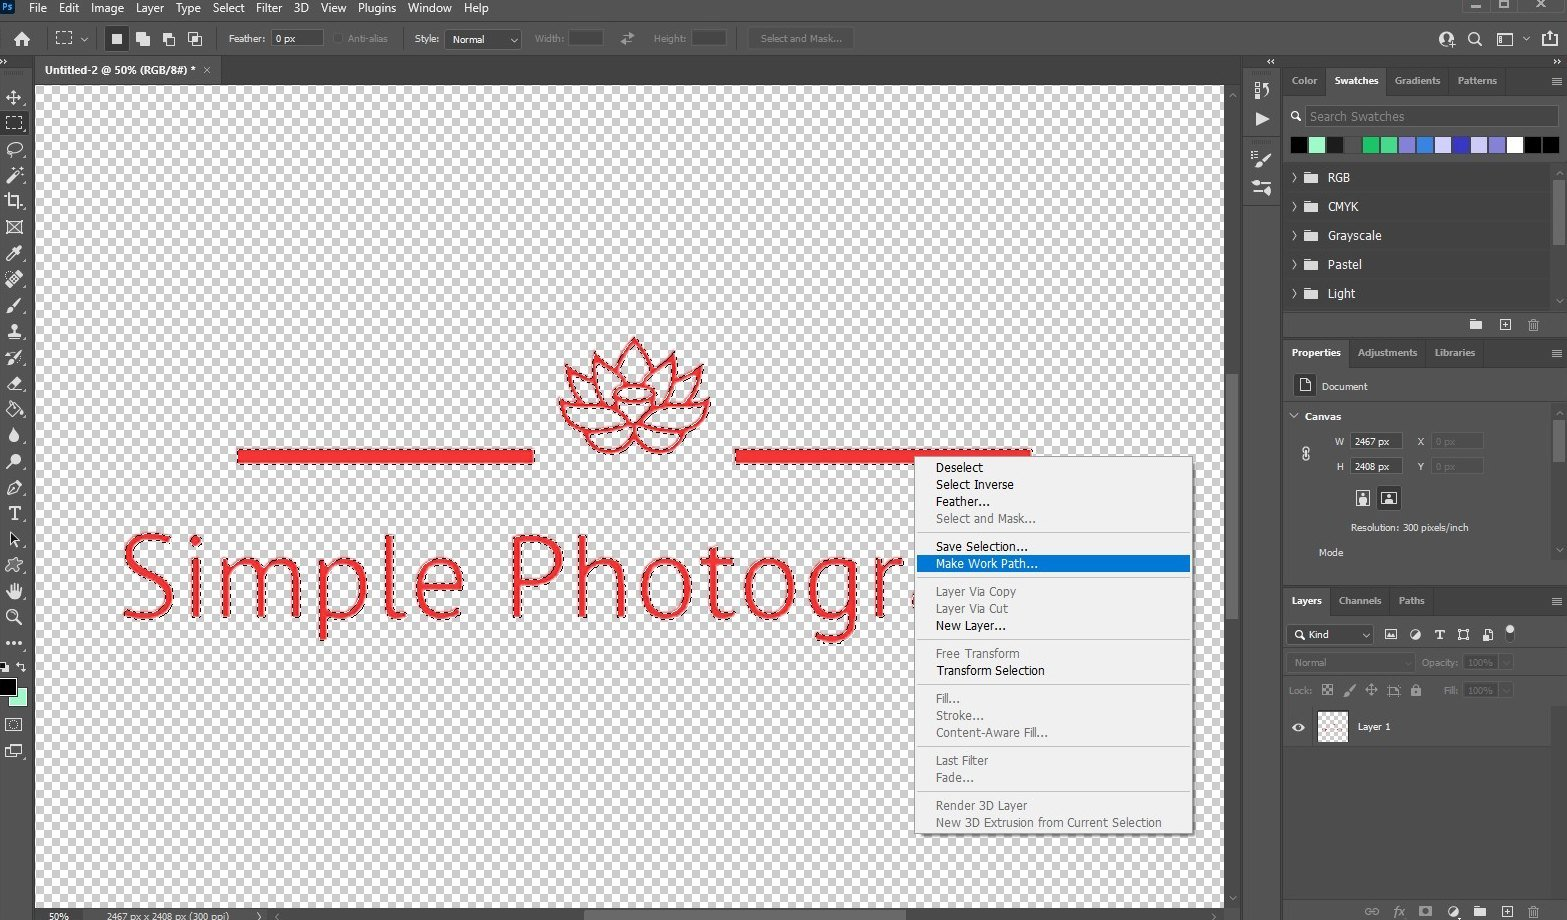 vectorize image in photoshop - 2